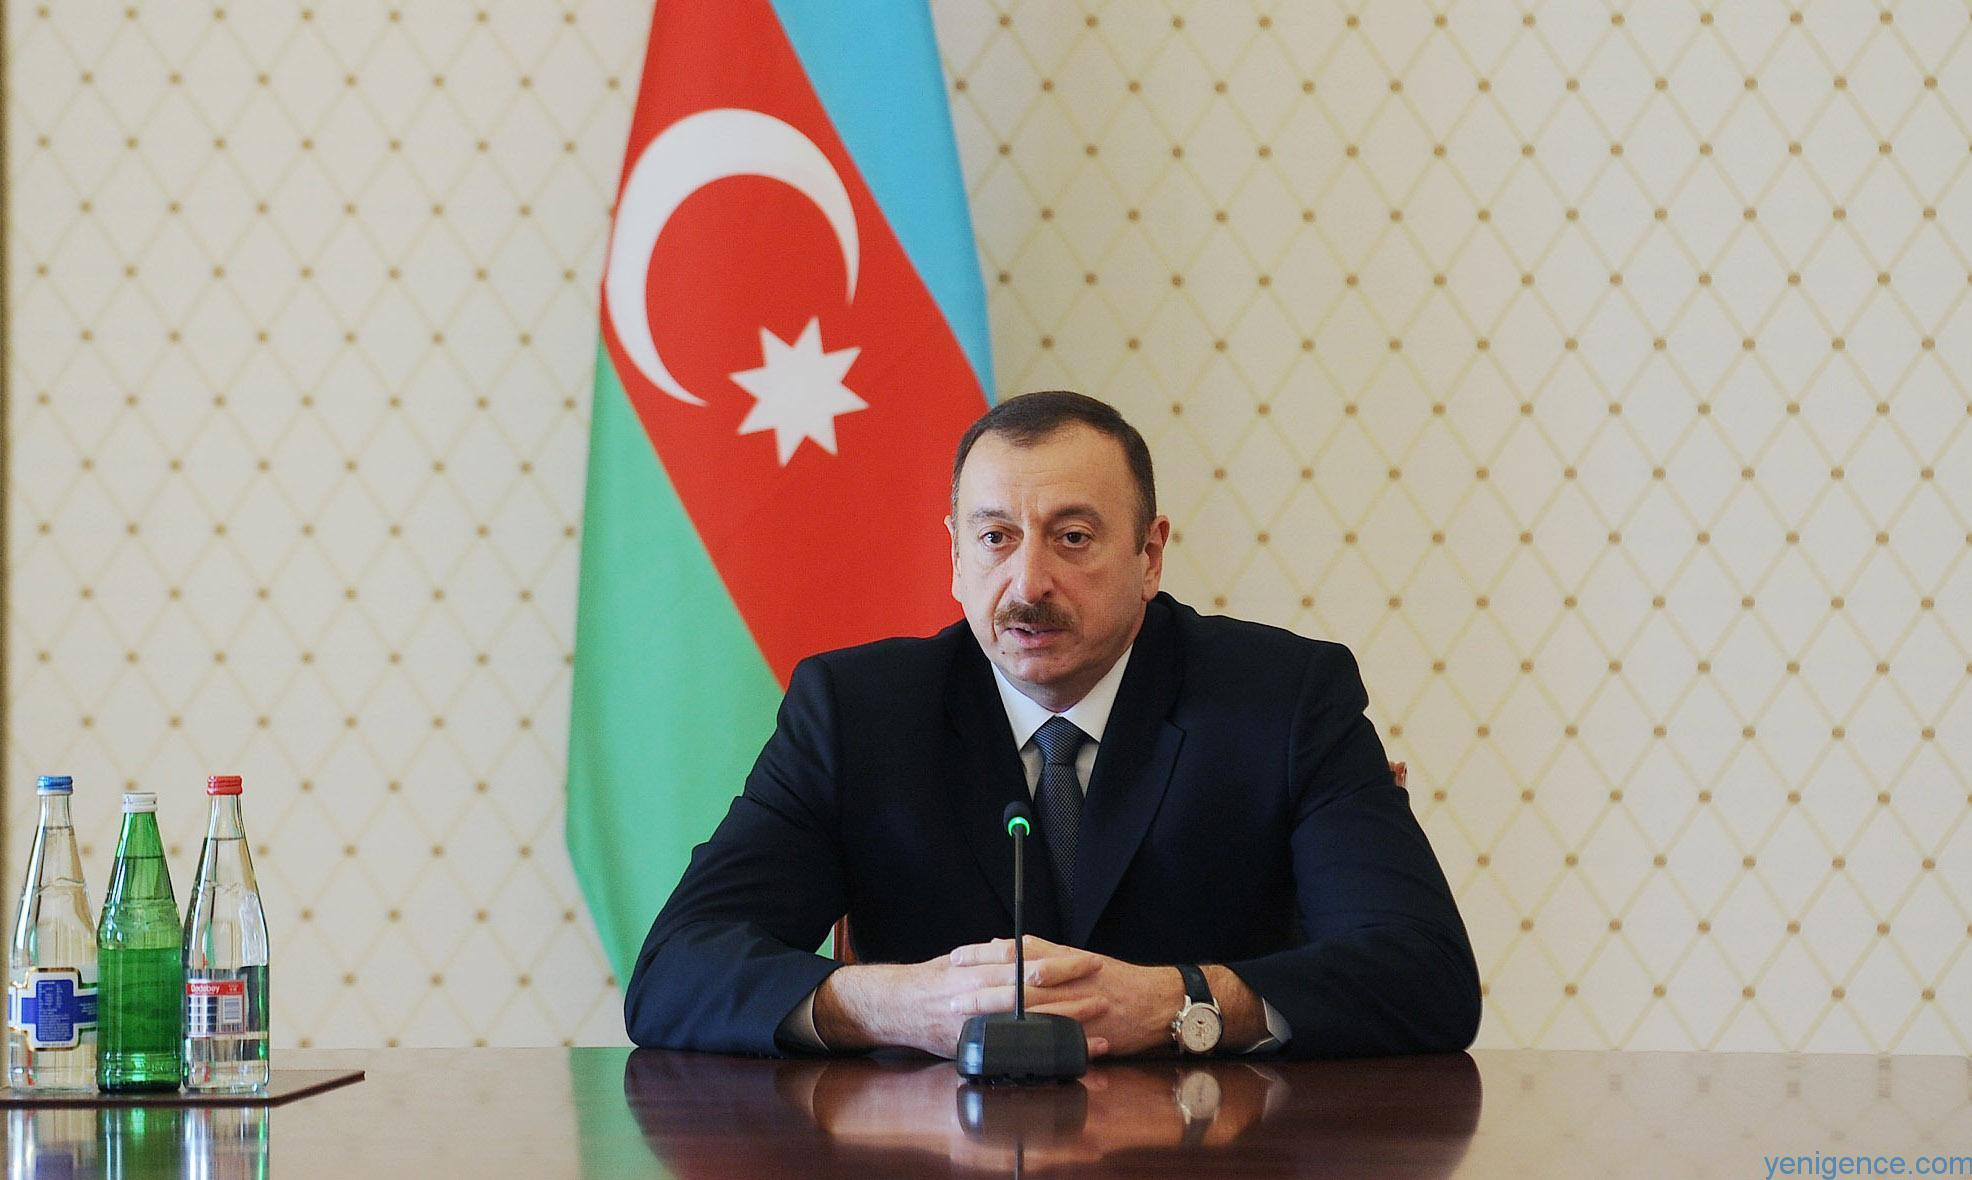 People's Artists of Azerbaijan sent a letter to President Ilham Aliyev